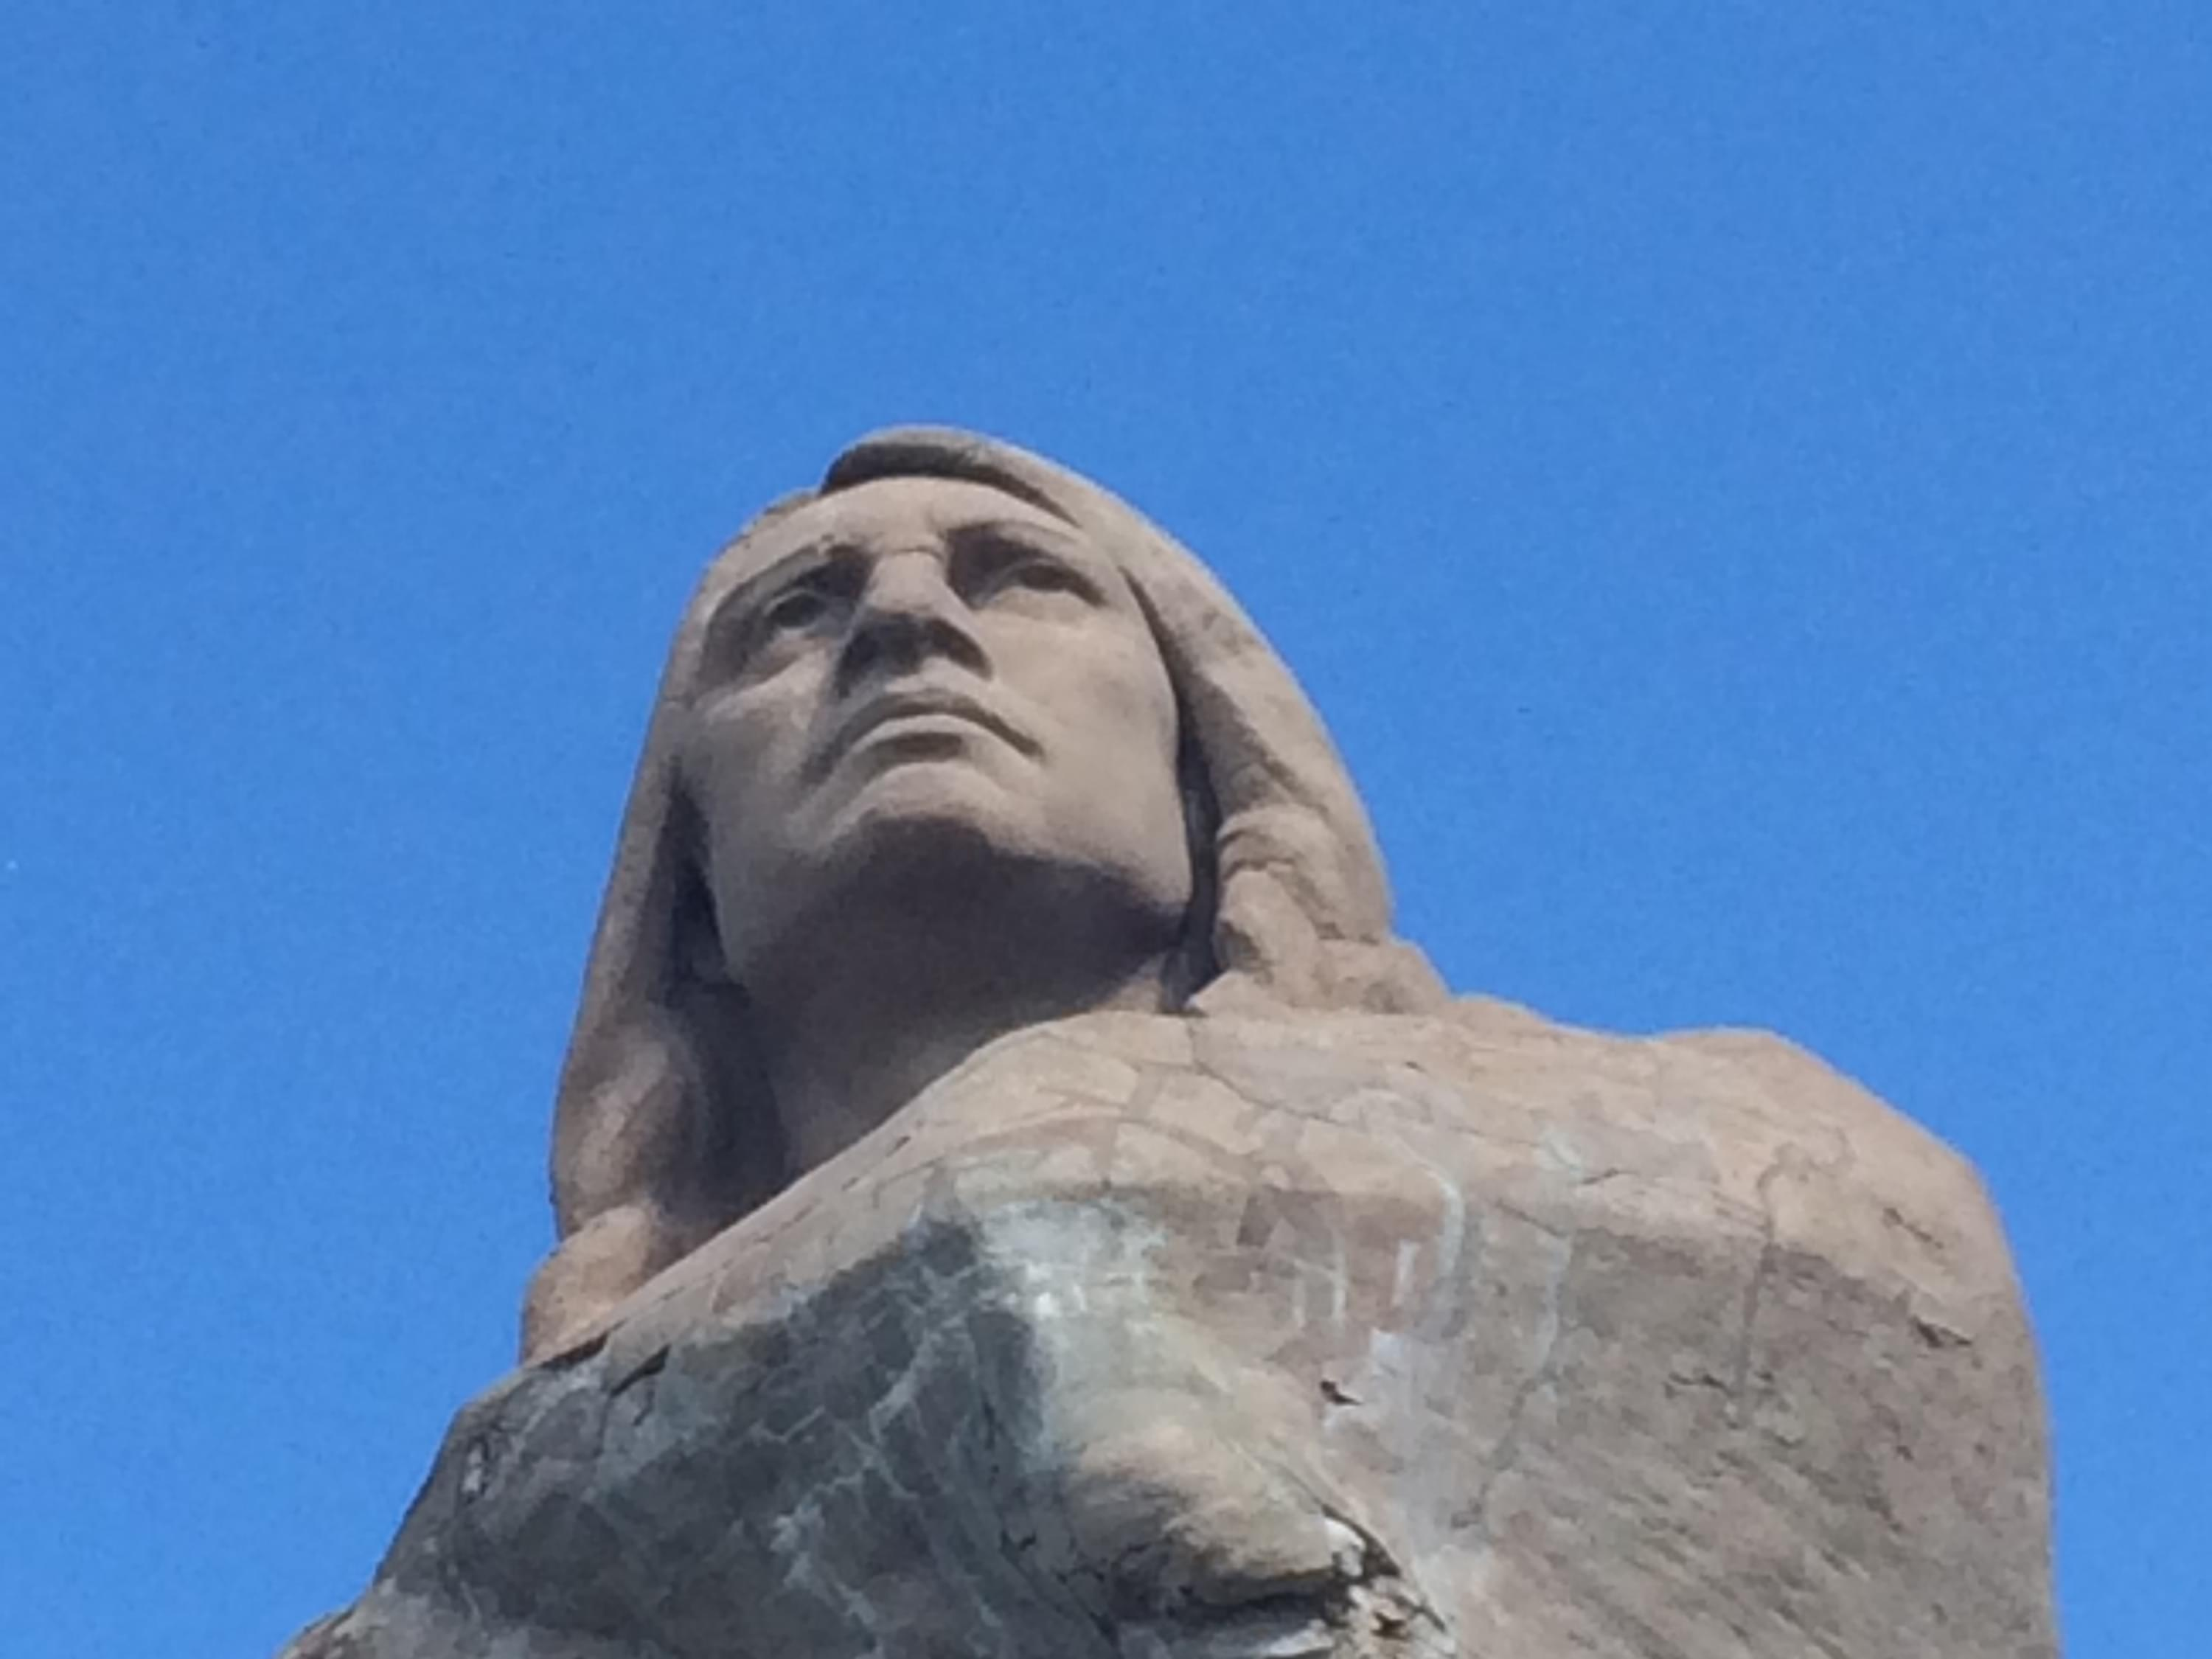 Public Celebration of Black Hawk Statue Planned for May